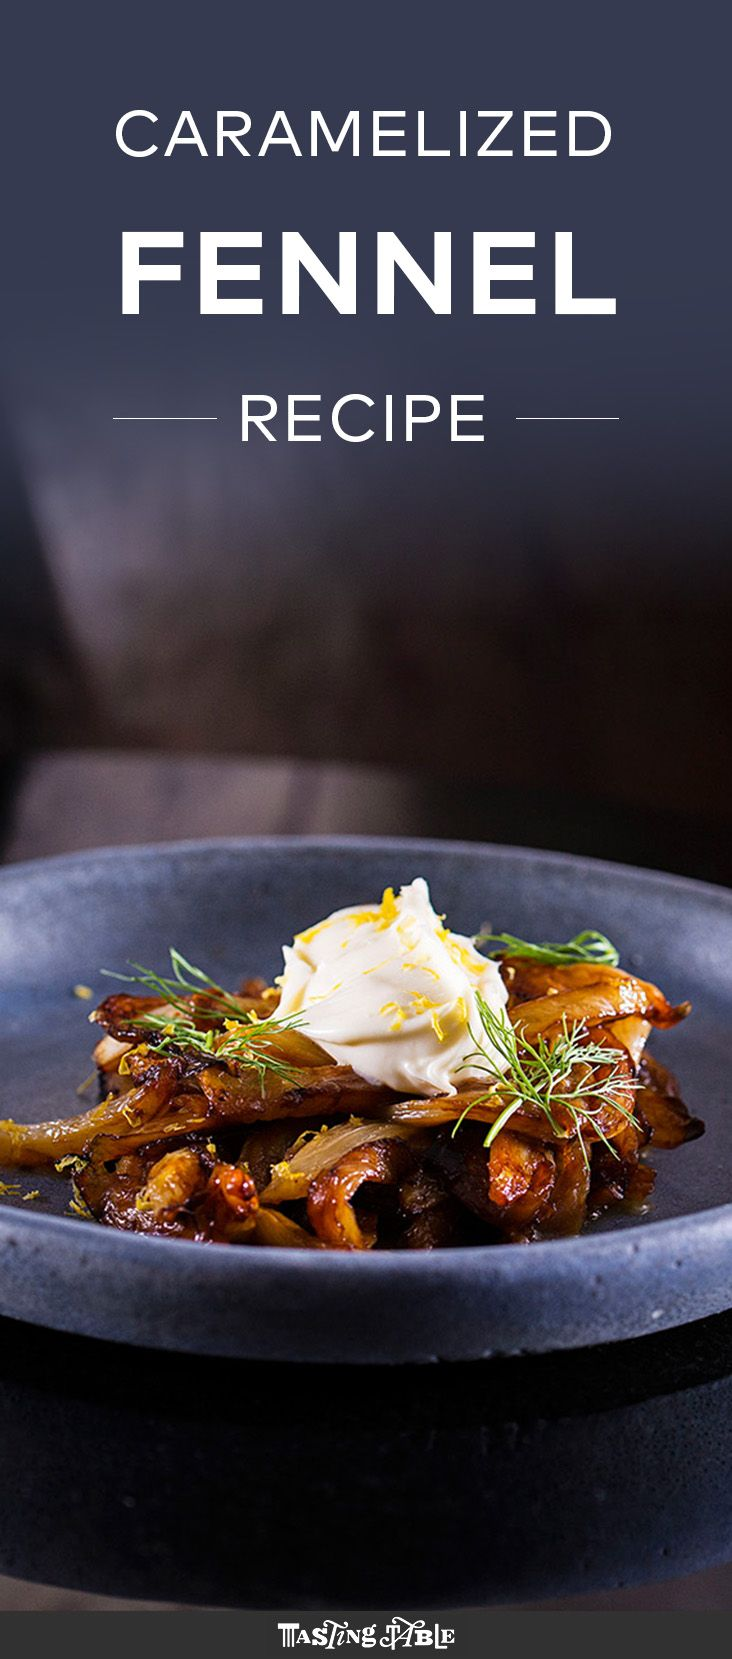 Watch and learn how to make caramelized fennel with mascarpone.